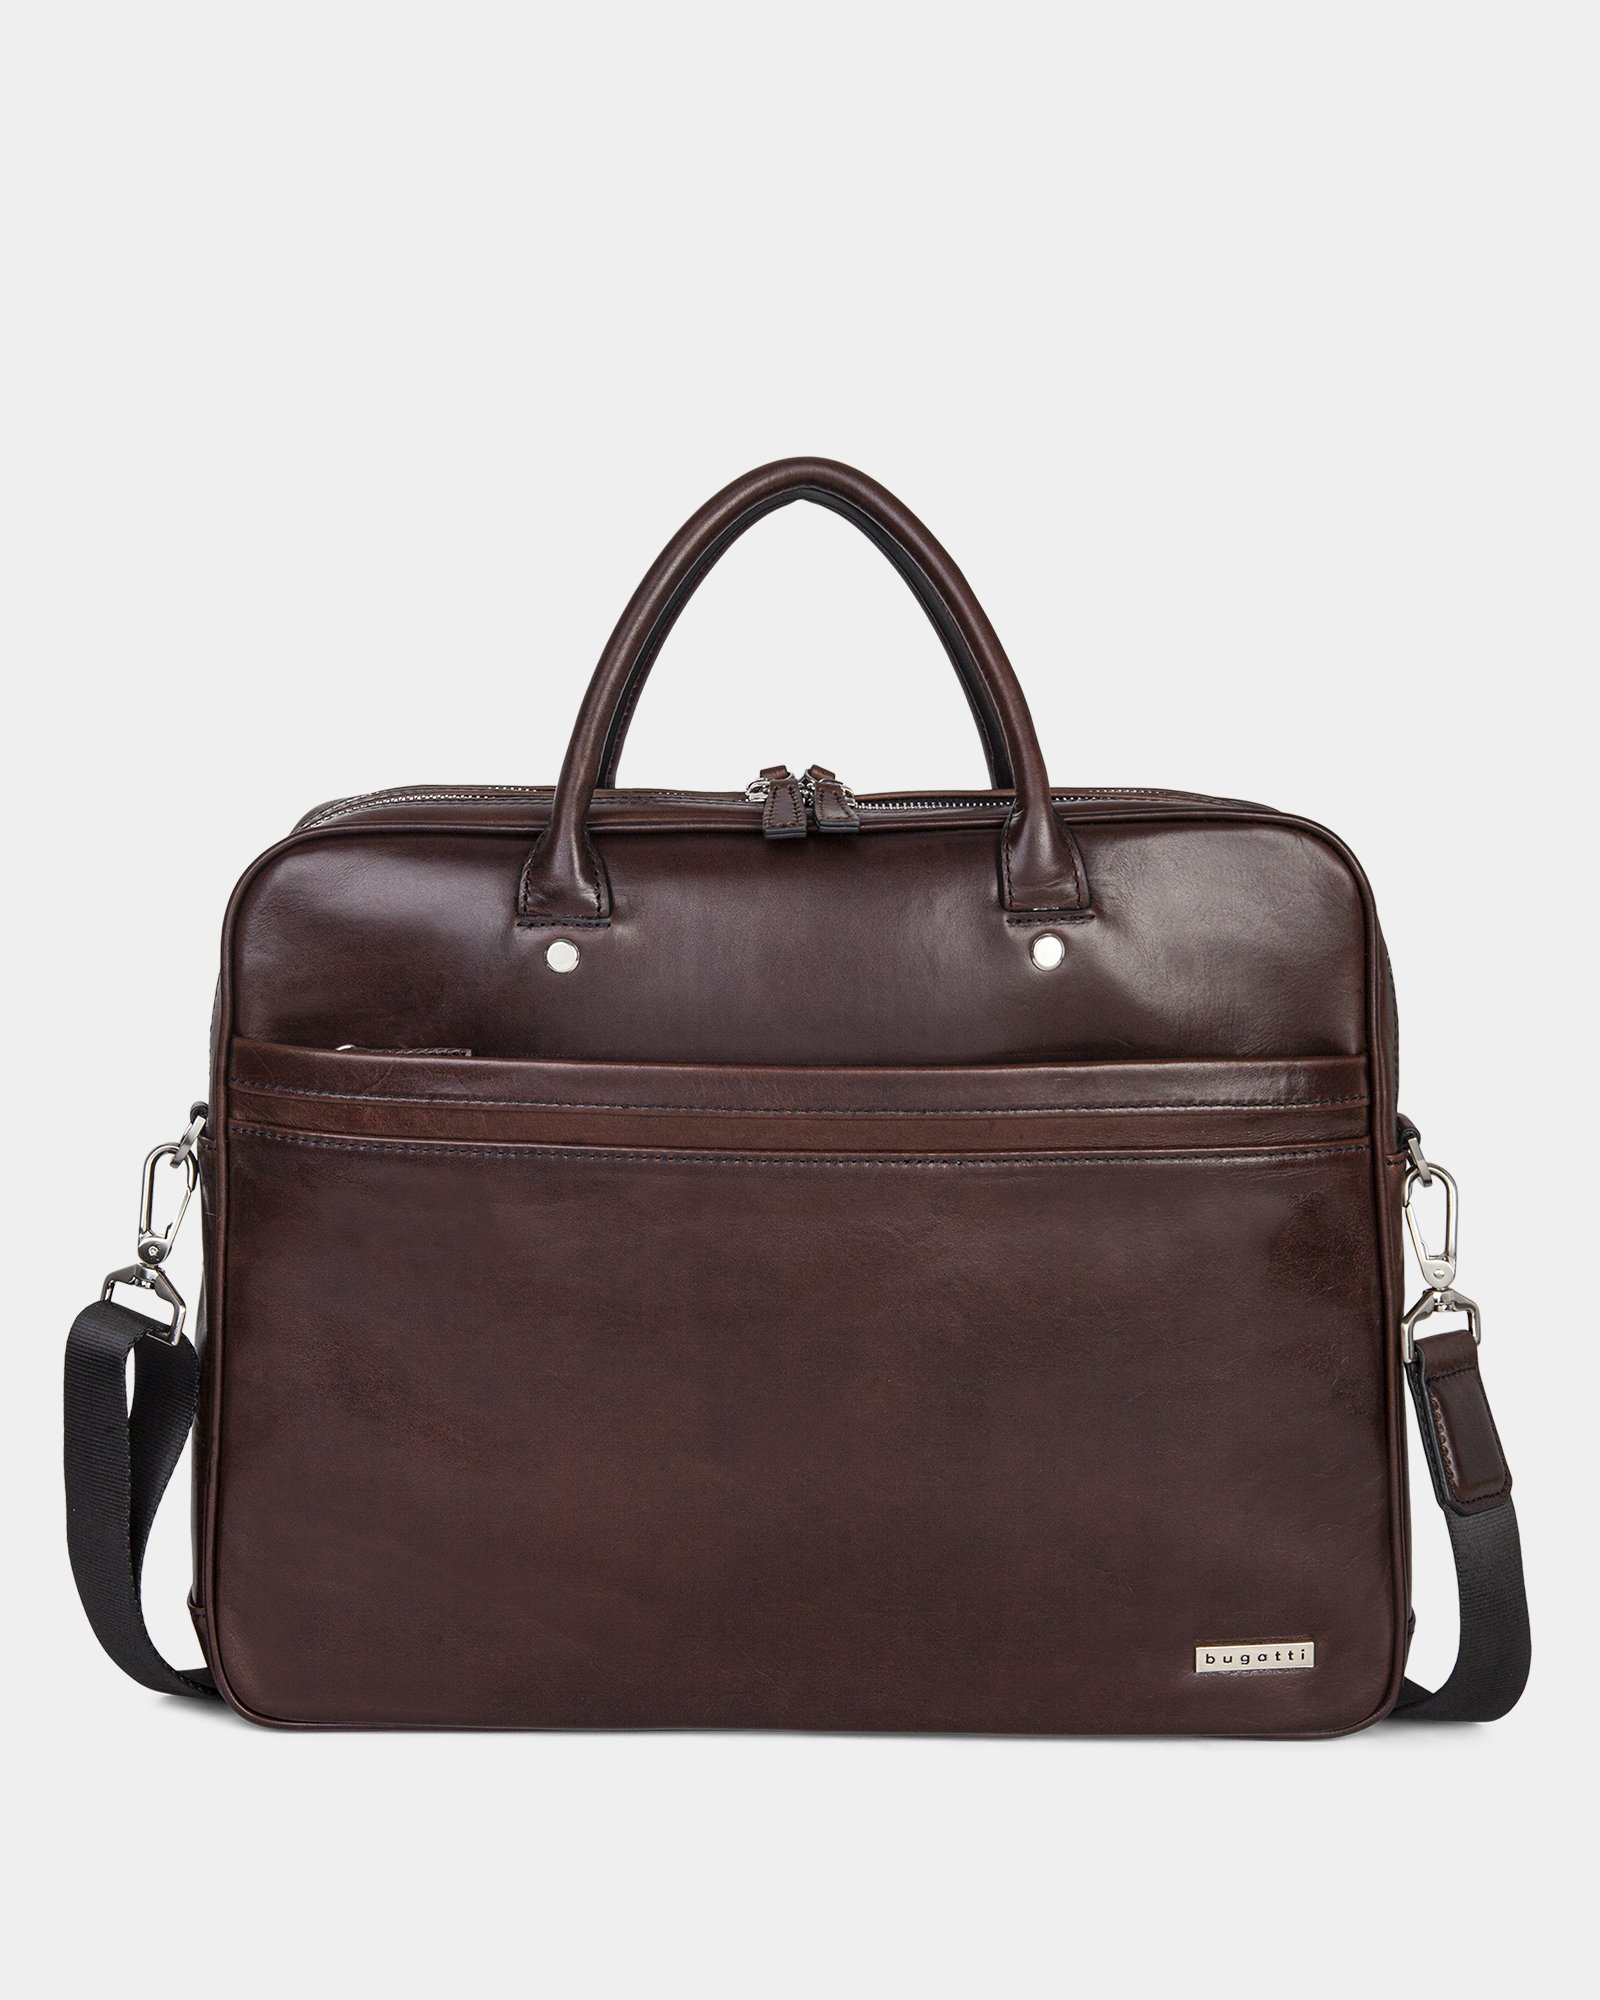 PORTO - WAXED LEATHER BRIEFCASE FOR 15.6 IN LAPTOP & TABLET - BROWN - Bugatti - Zoom